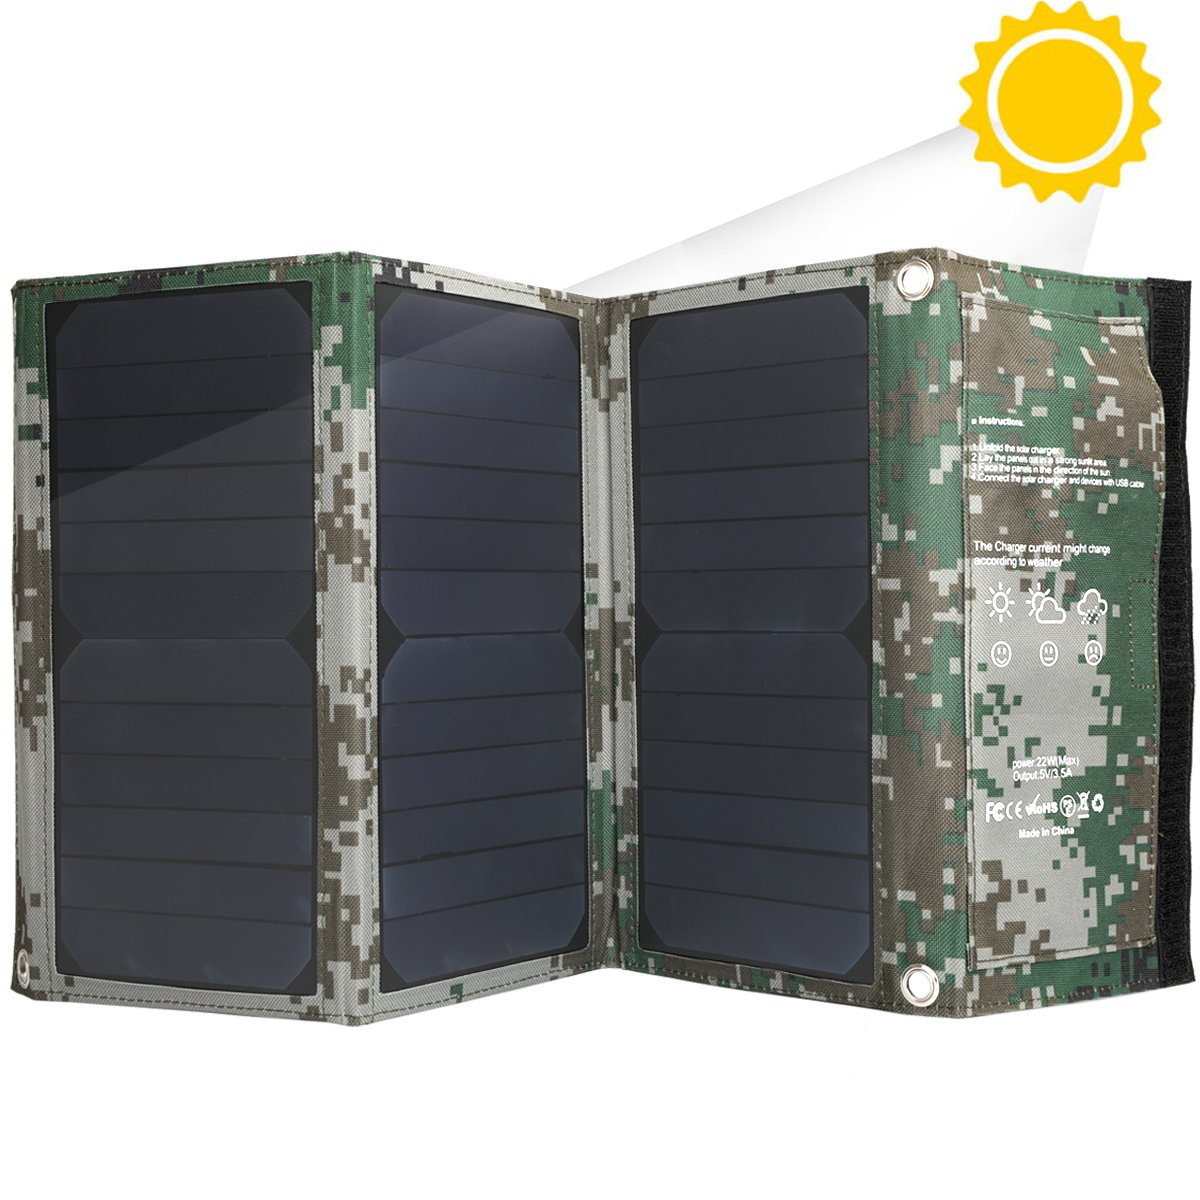 Friengood Foldable Solar Panel Charger 22W, Portable Waterproof Solar Powered Battery Charger with Dual USB Ports for iPhone, iPad, Samsung Galaxy, Camera and Other USB 5V Devices - Camouflage